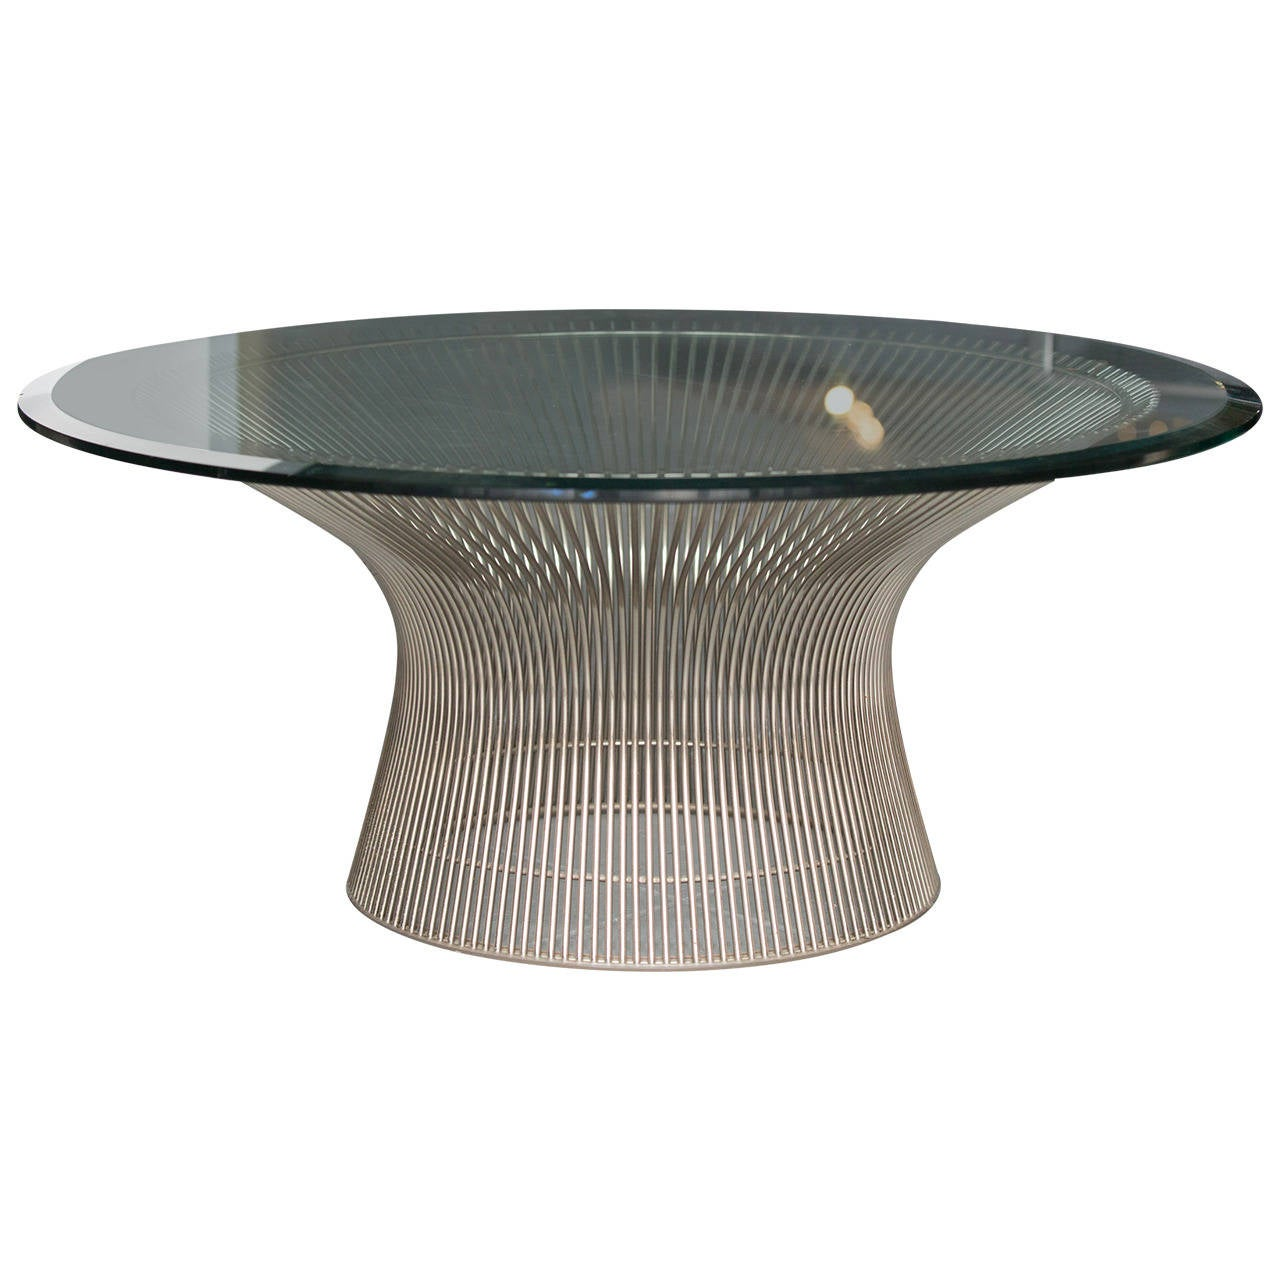 Warren platner coffee table for knoll at 1stdibs for Table warren platner